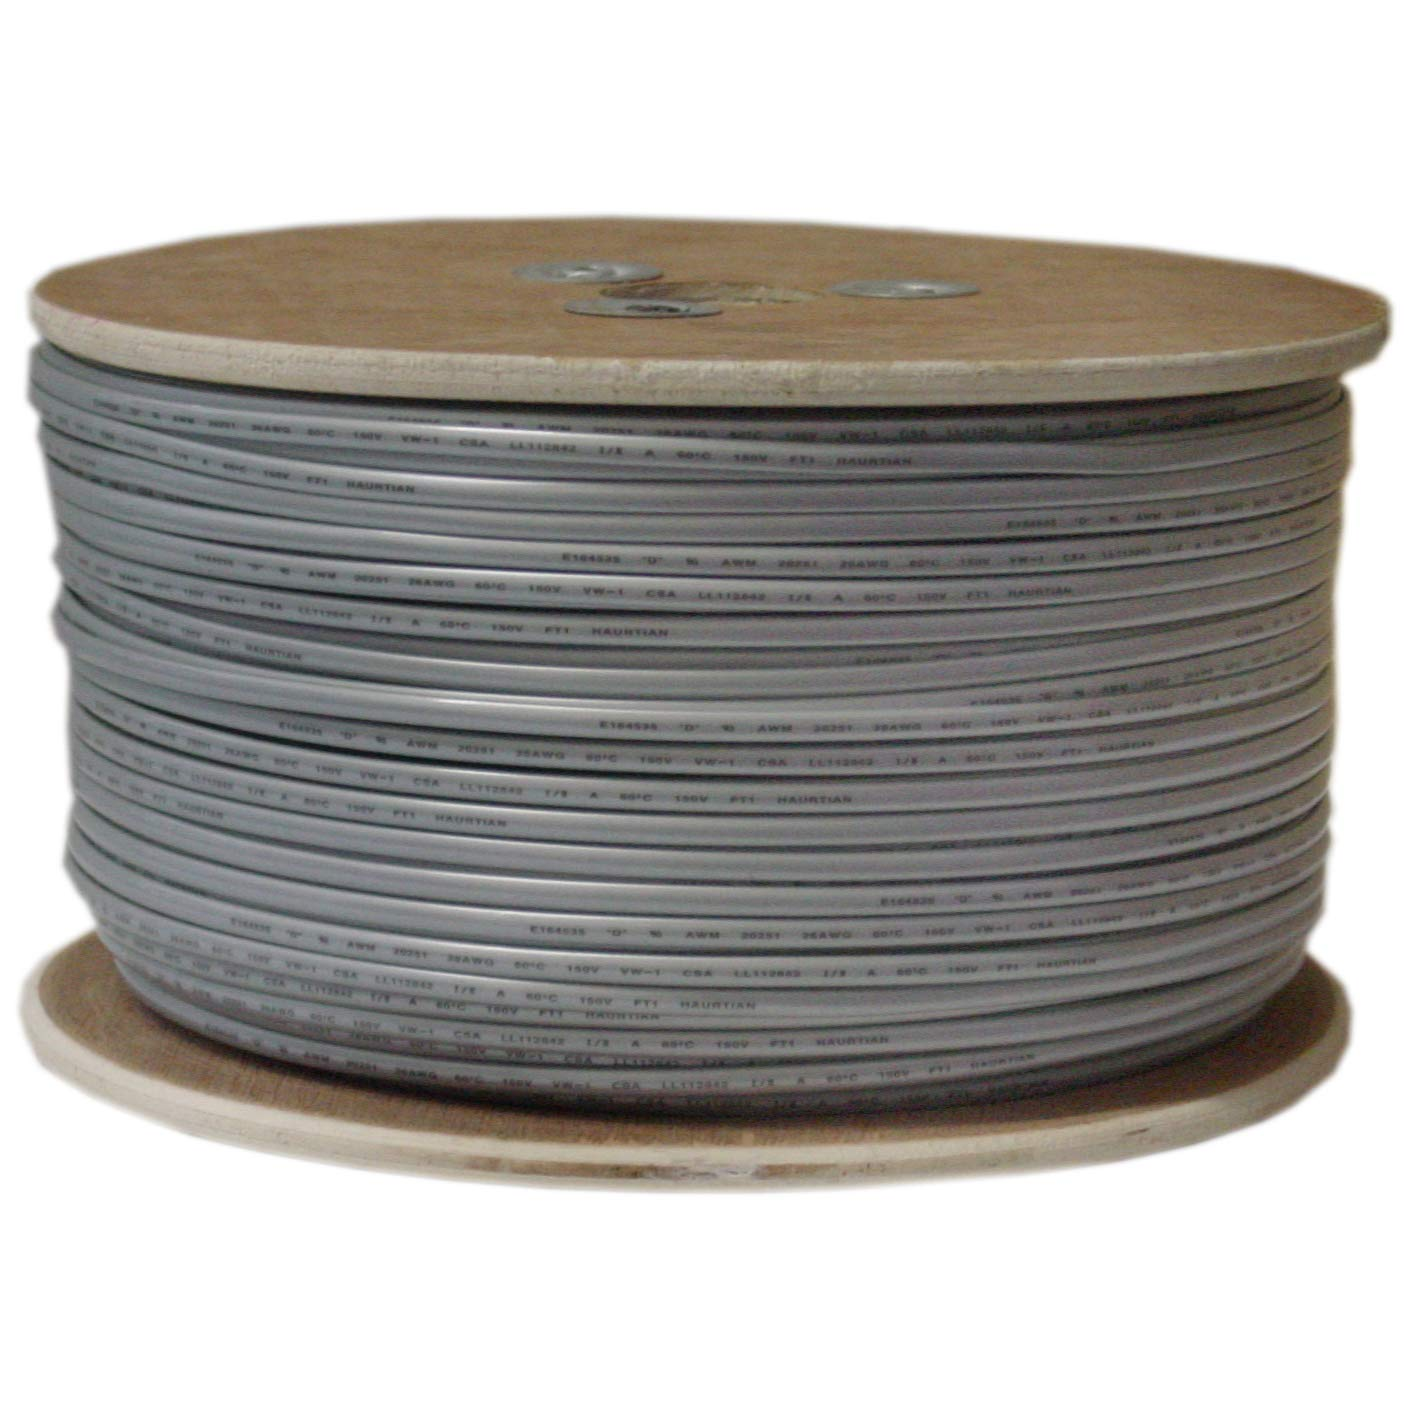 ACCL 28 AWG/6 Conductor Phone Cord, Bare end, Spool, Silver Satin, 1000ft, 1pk